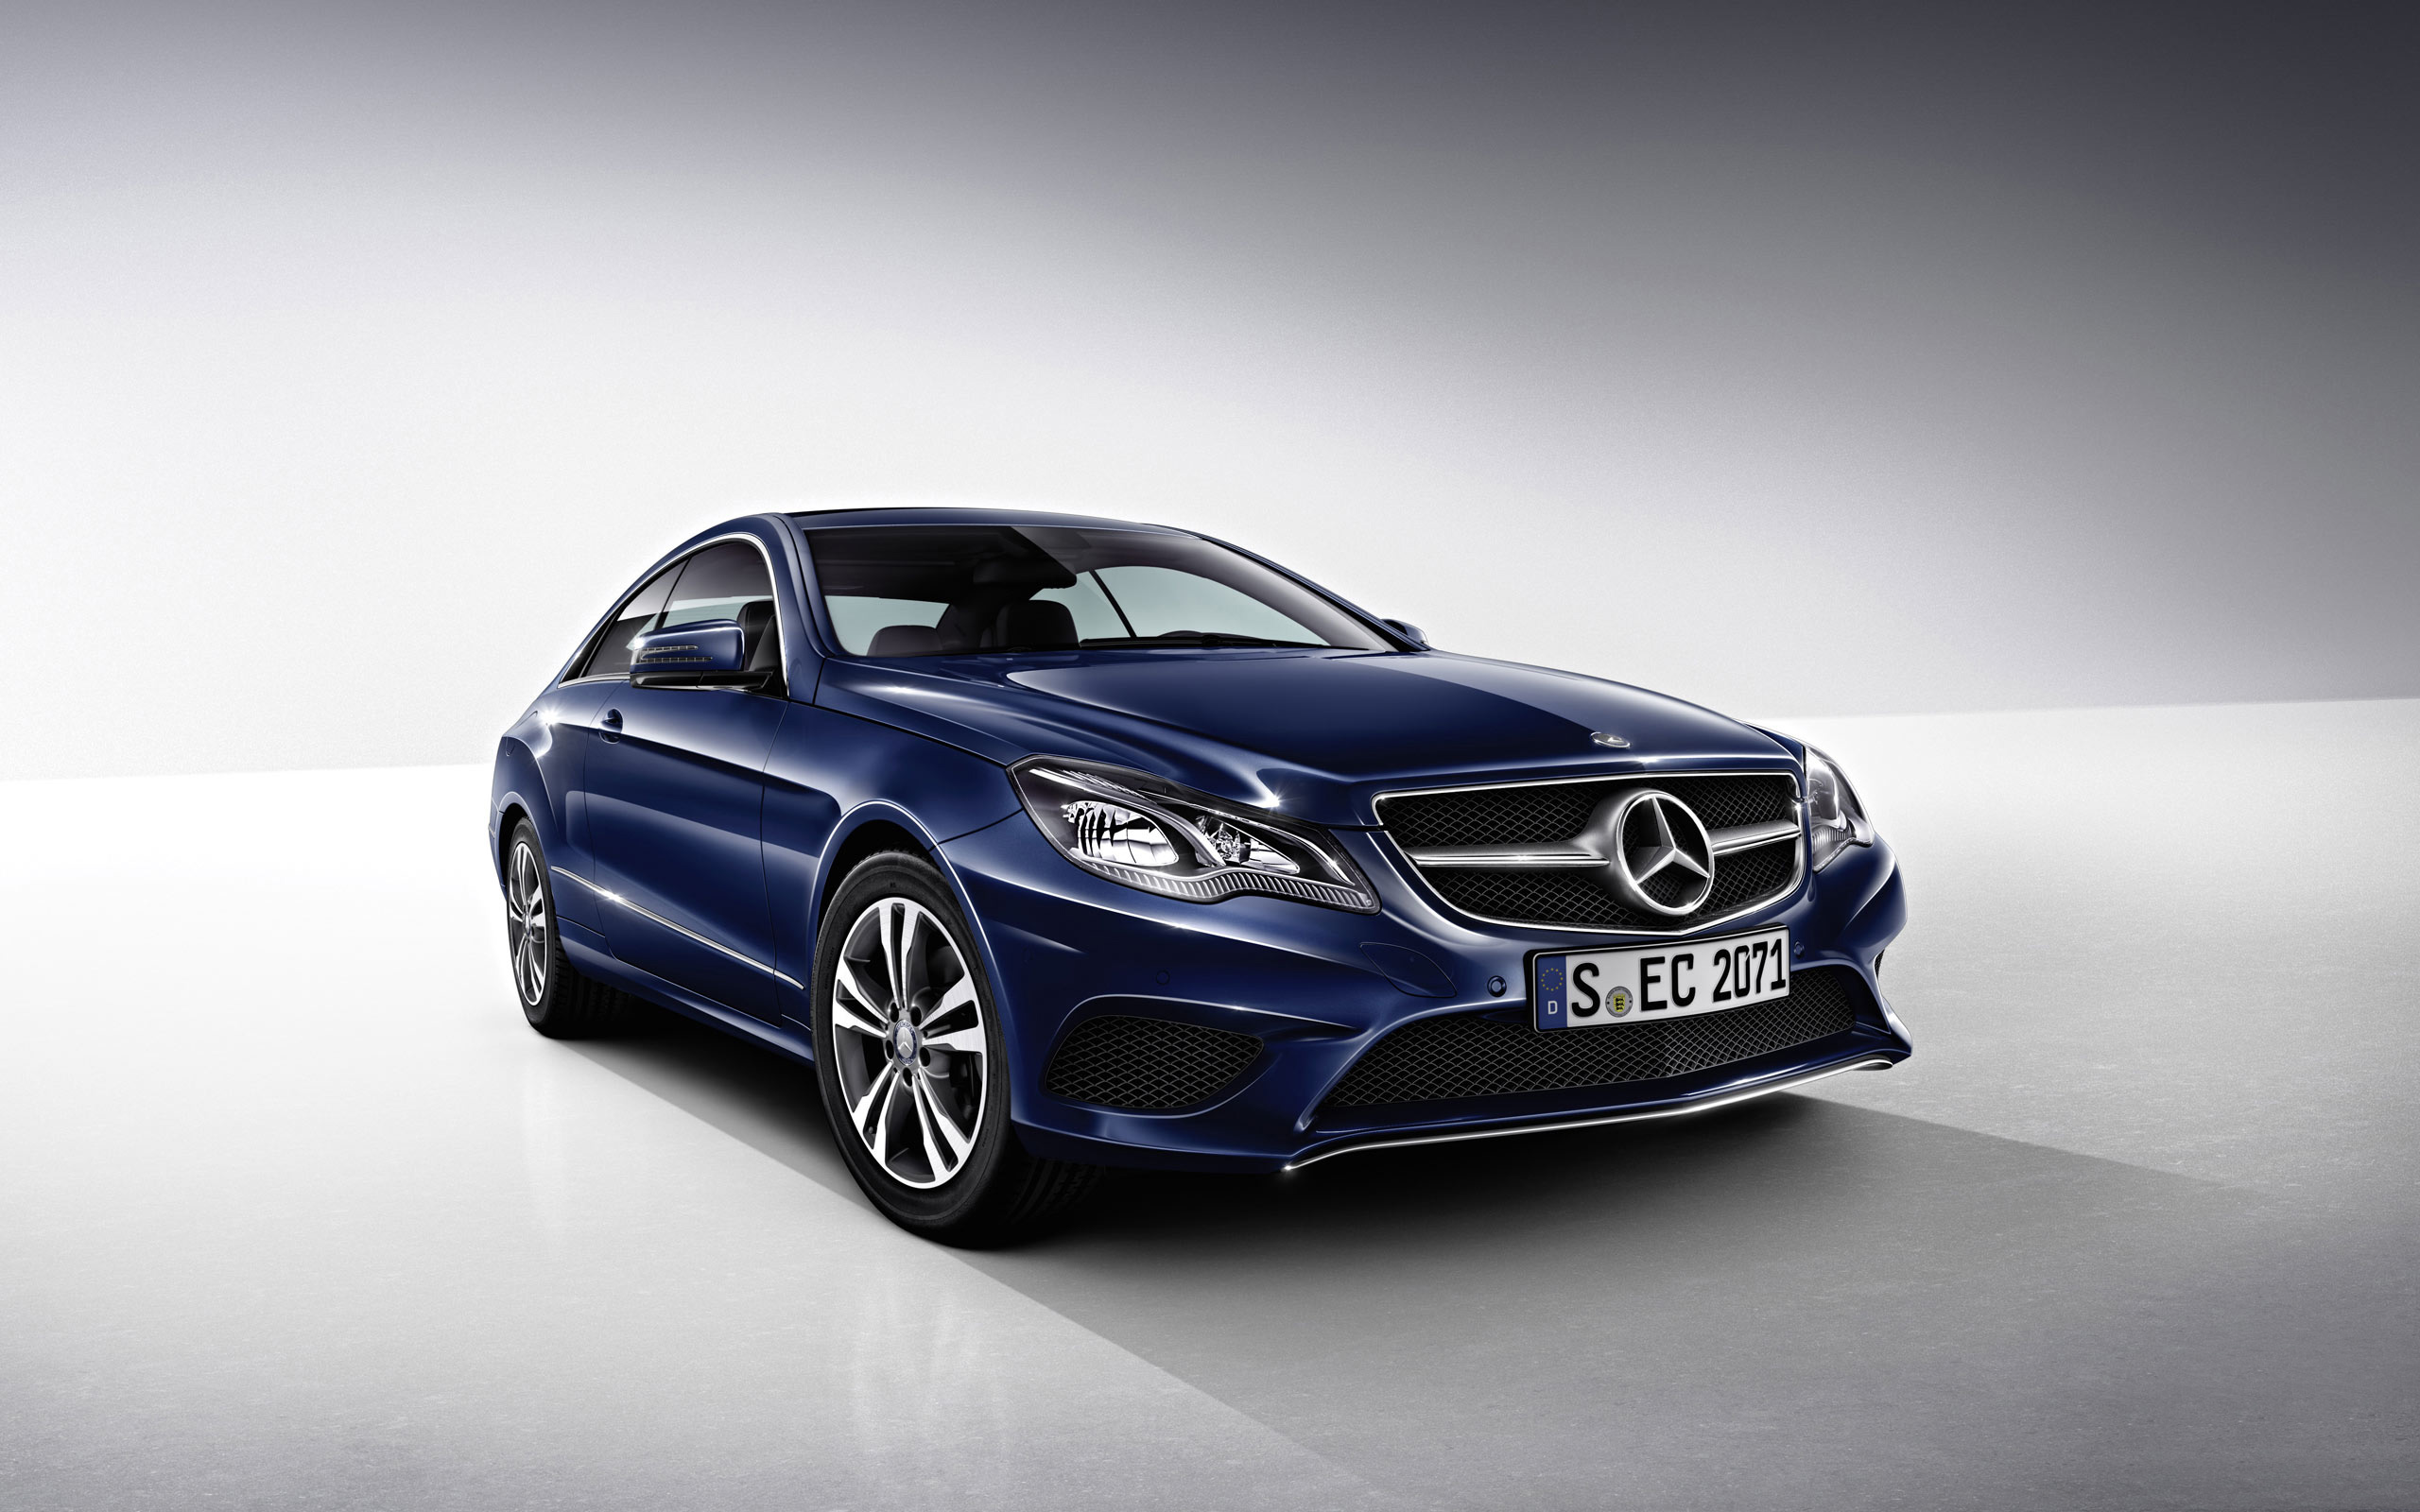 2014 mercedes benz e class coupe wallpaper hd car for Mercedes benz cars pictures